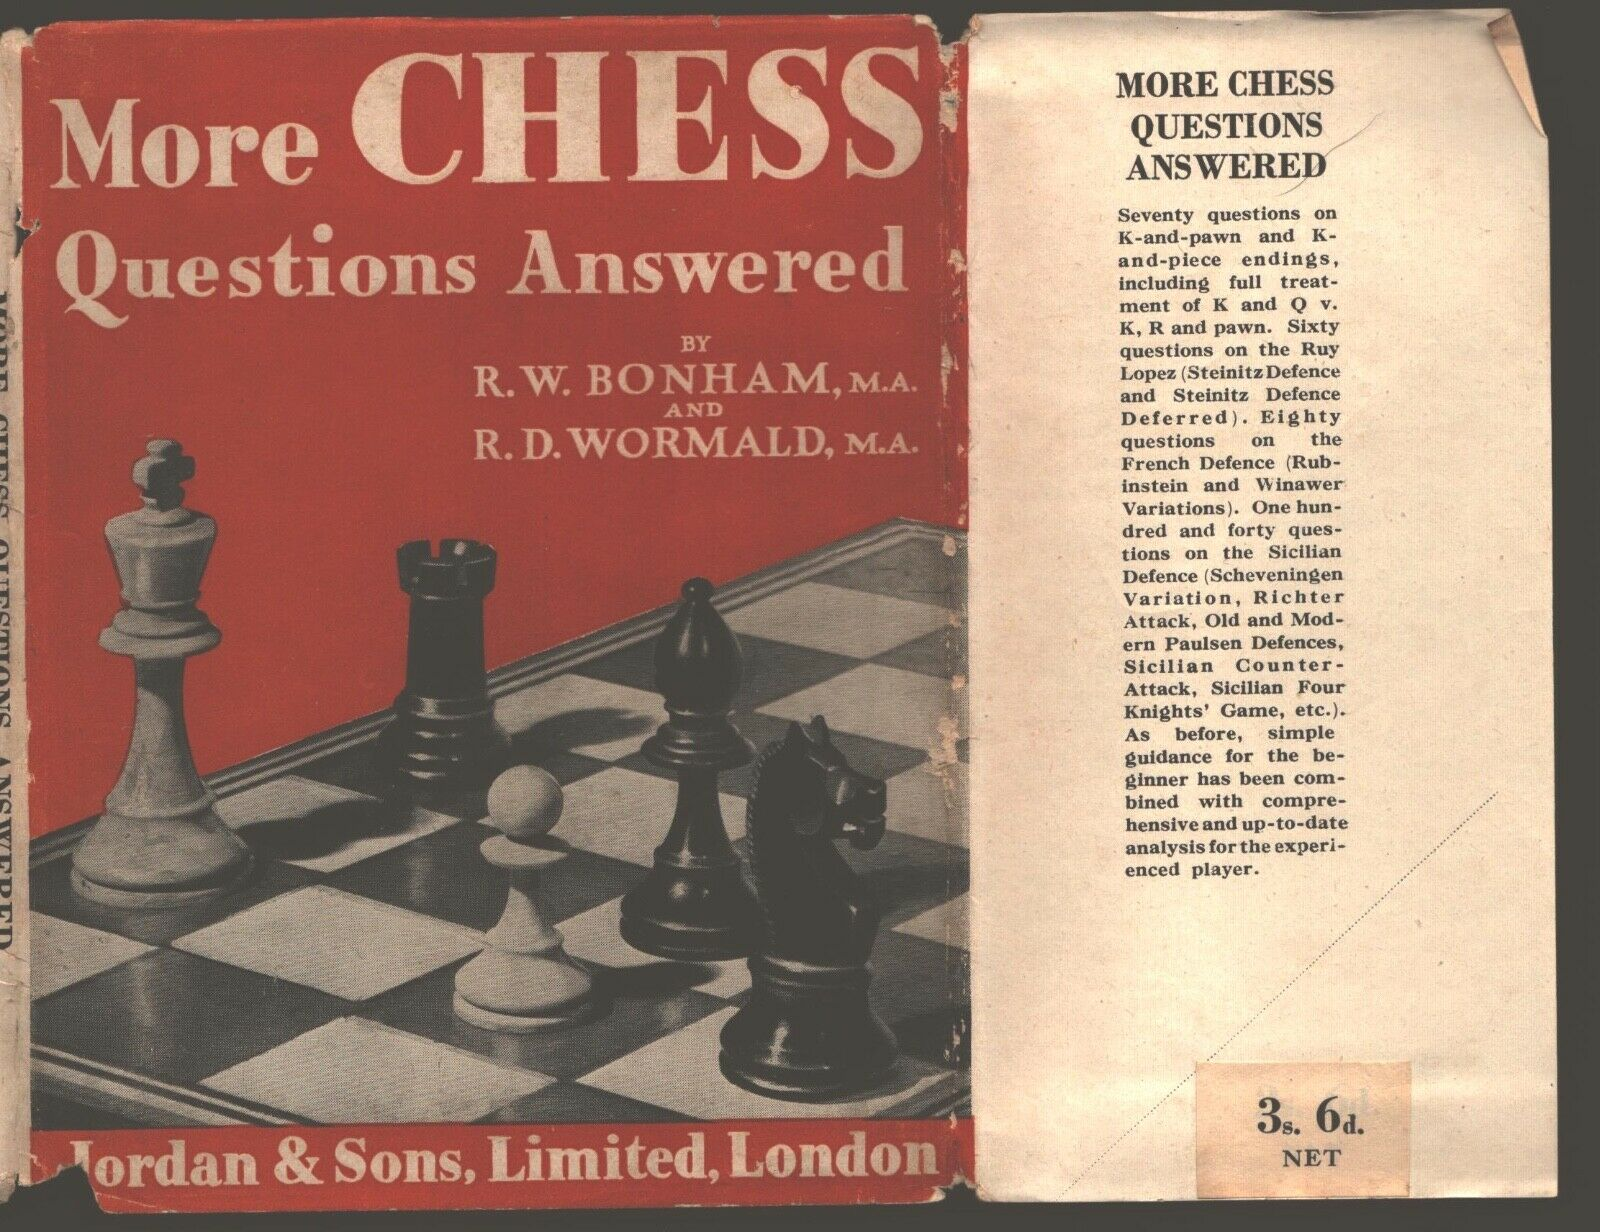 More Chess Questions Answered, RW Bonham & RD Wormald, Jordan & Sons Ltd, London, 1948